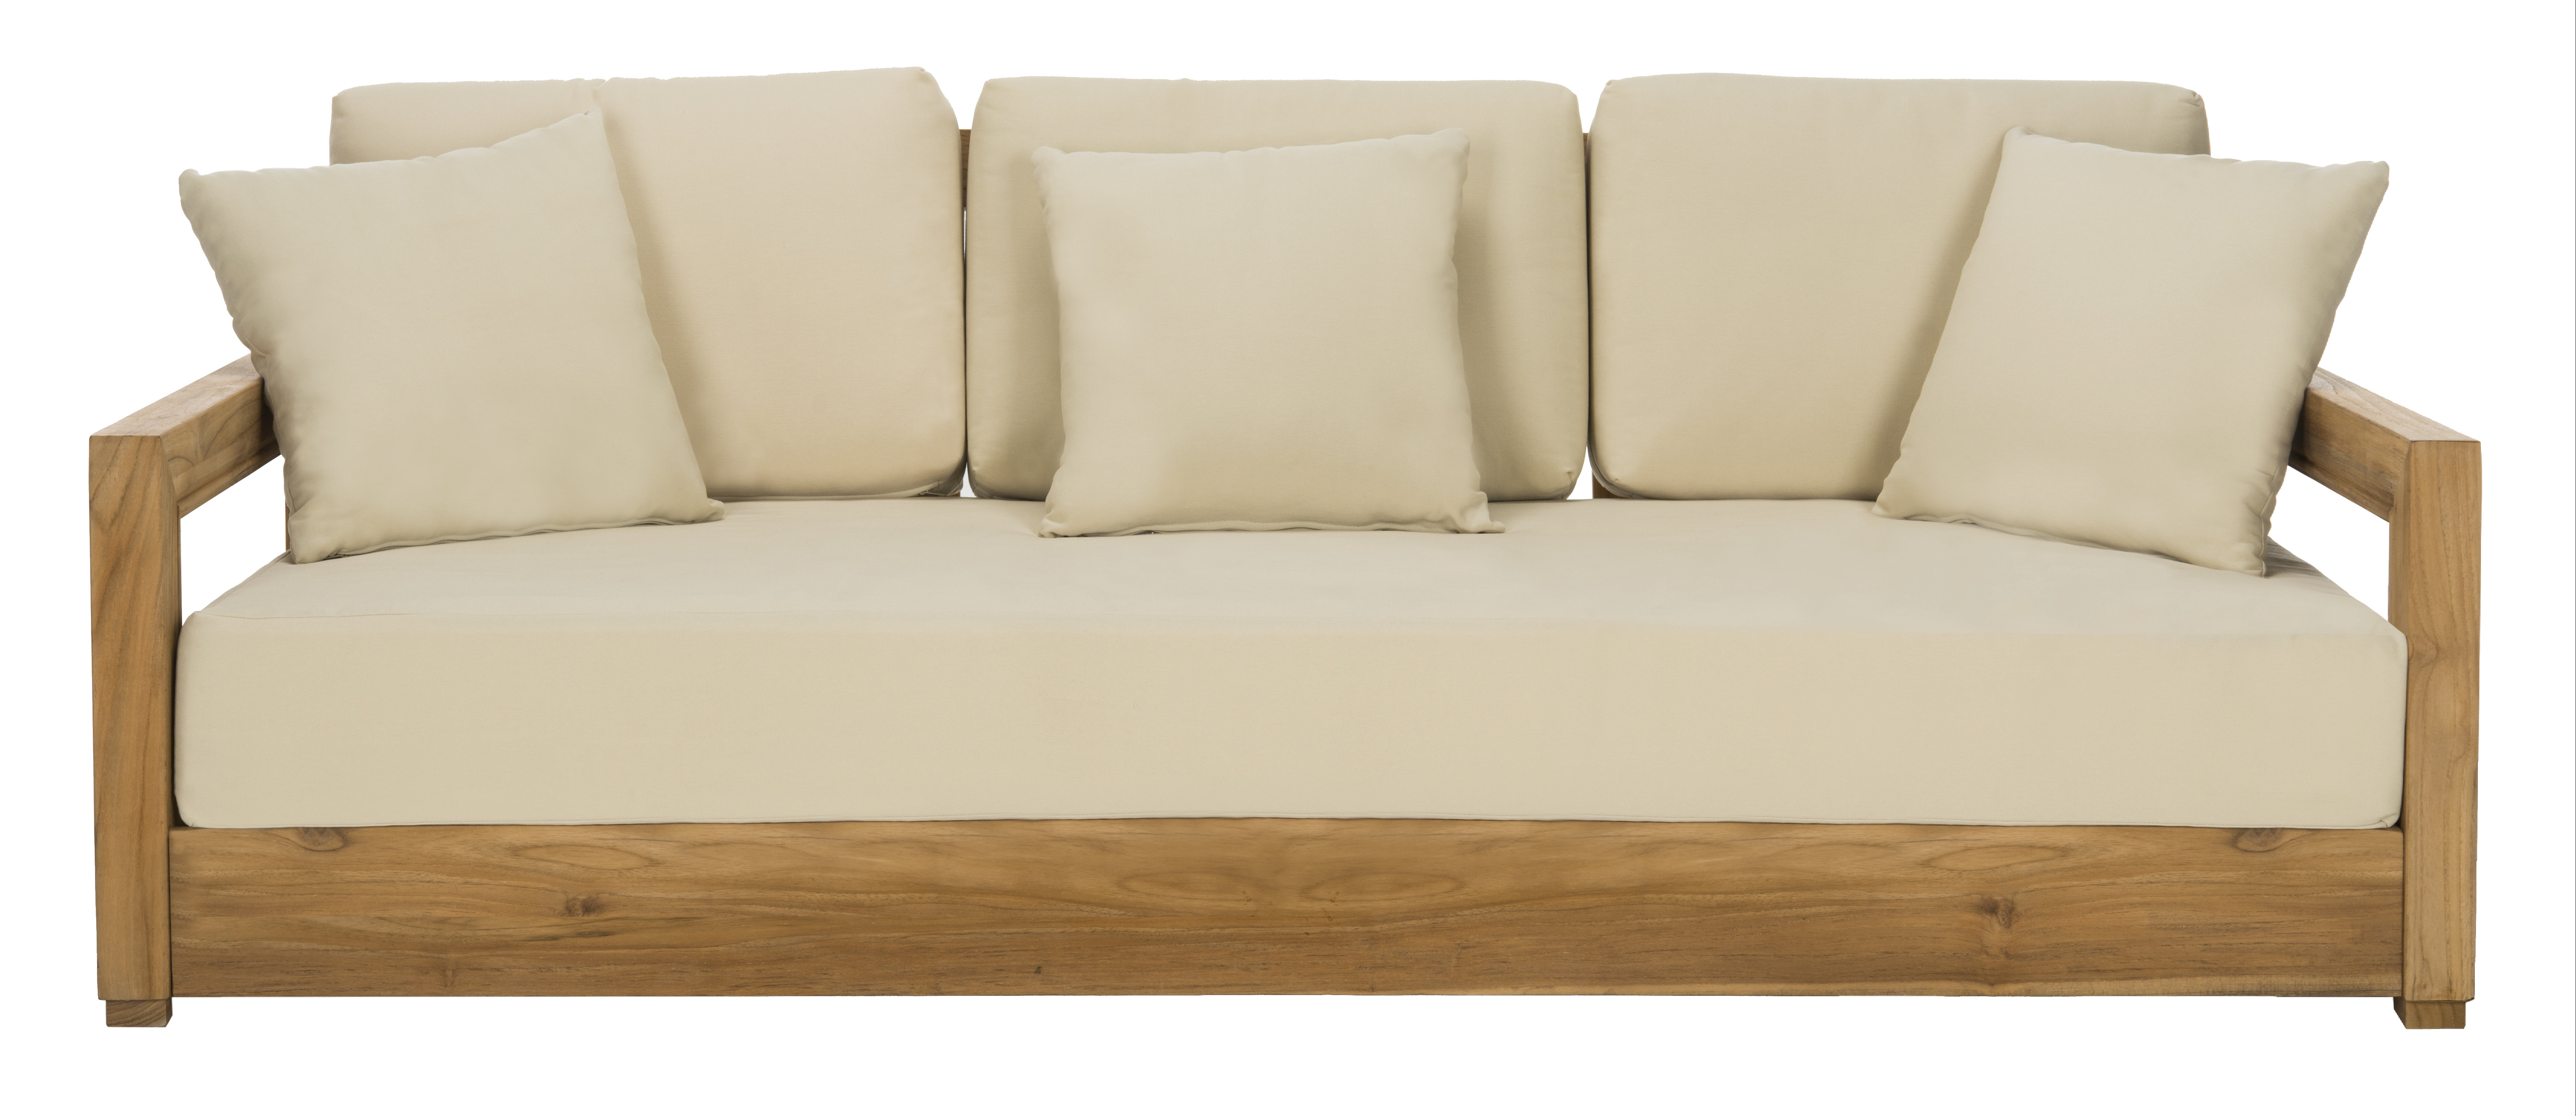 Modern Outdoor Sofas (View 14 of 20)